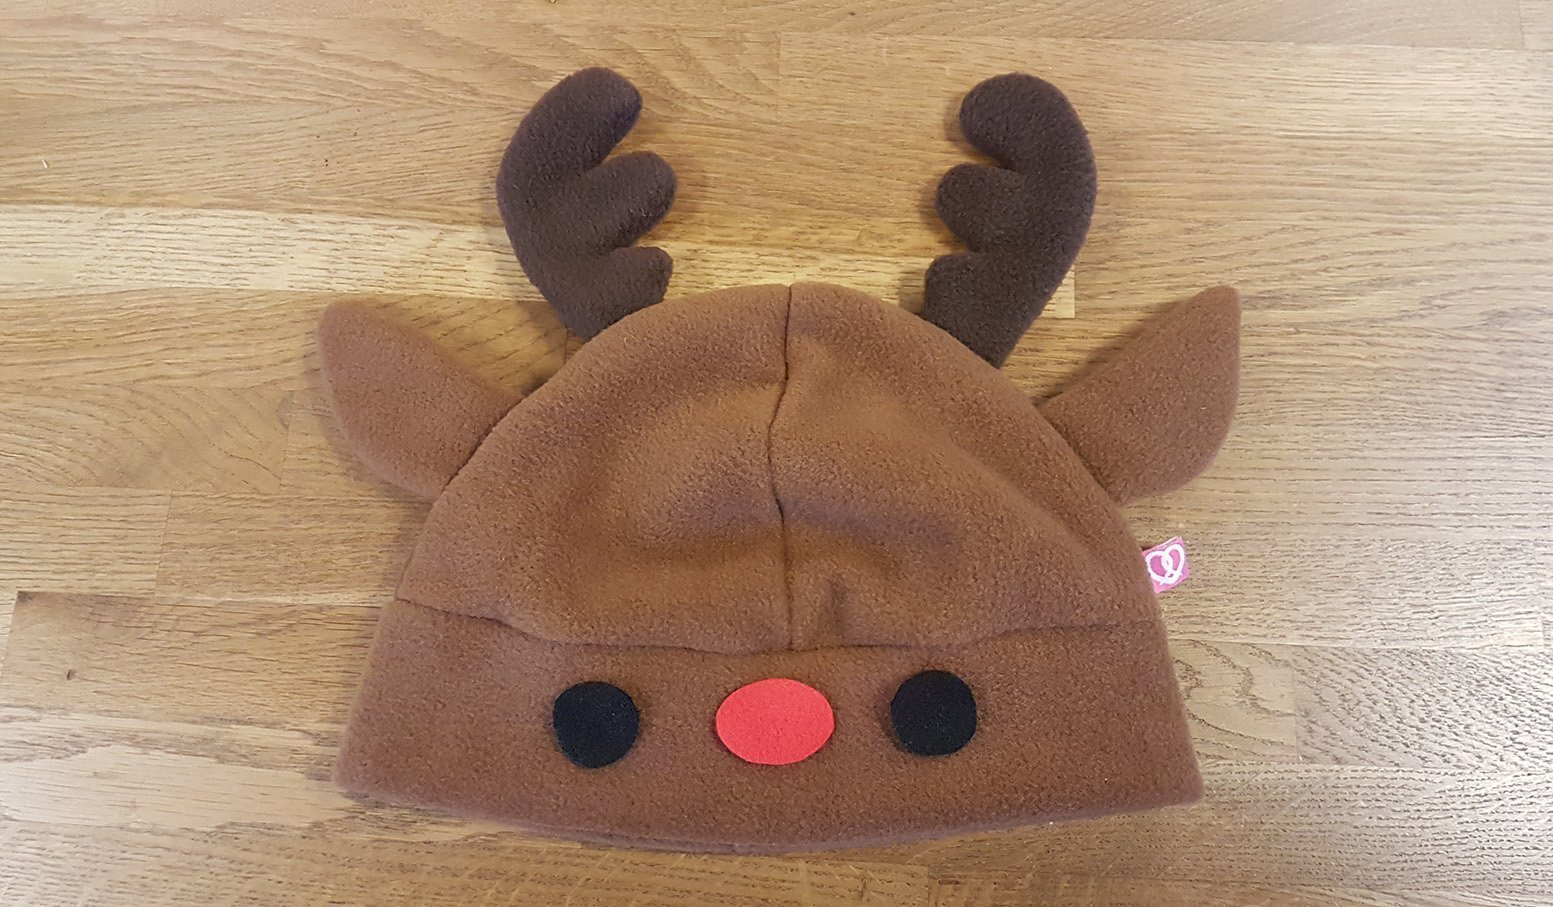 Sewing instructions for a cute reindeer hat